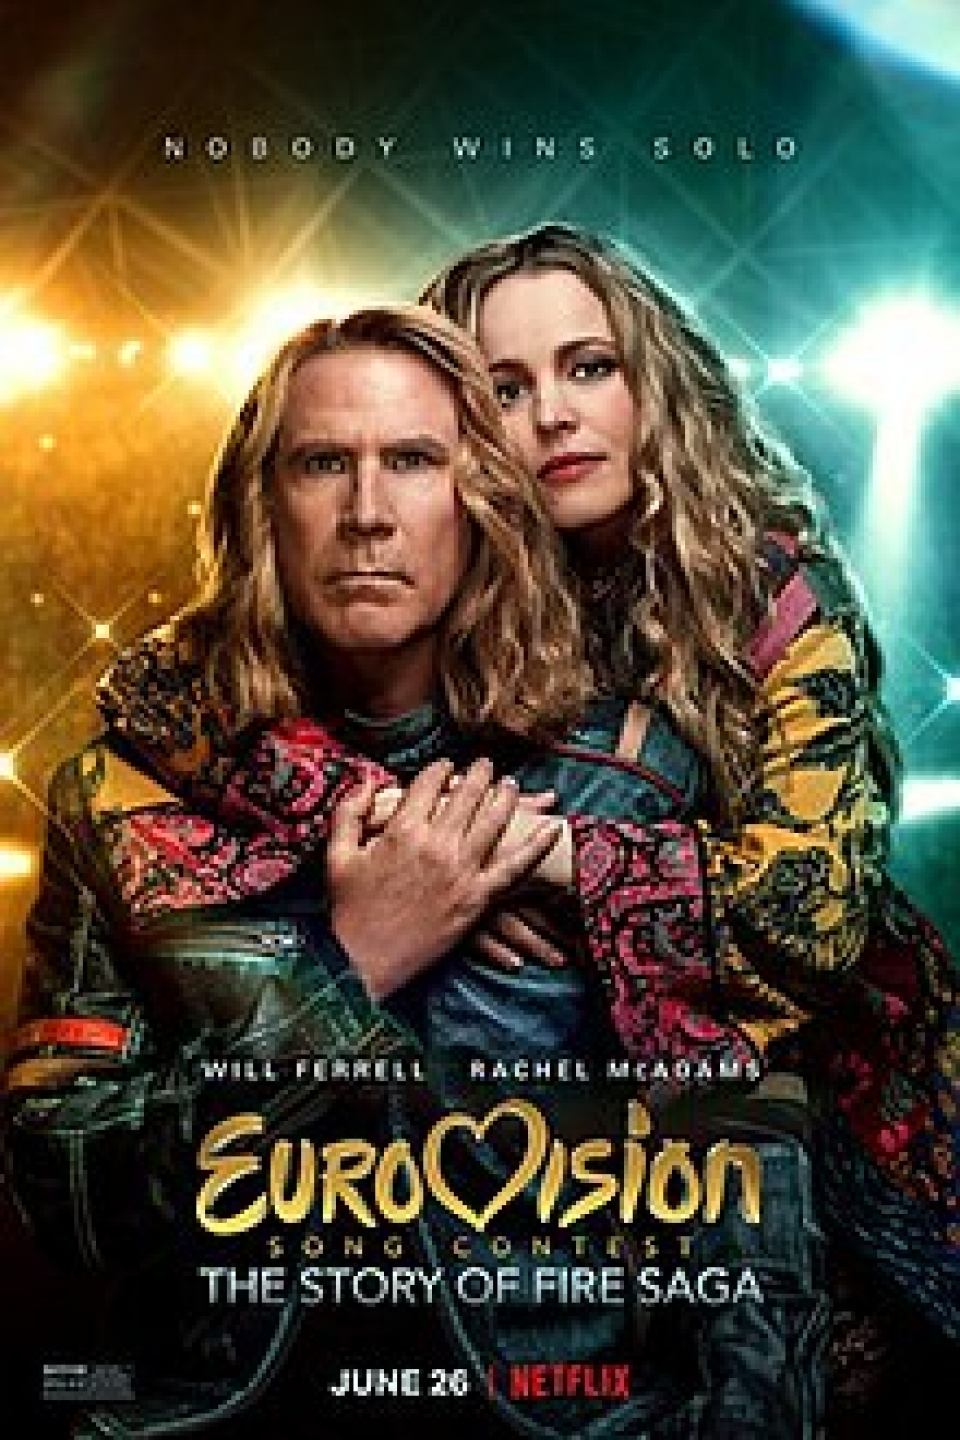 EUROVISION SONG CONTEST: THE STORY OF FIRE SAGA | NETFLIX (2020)